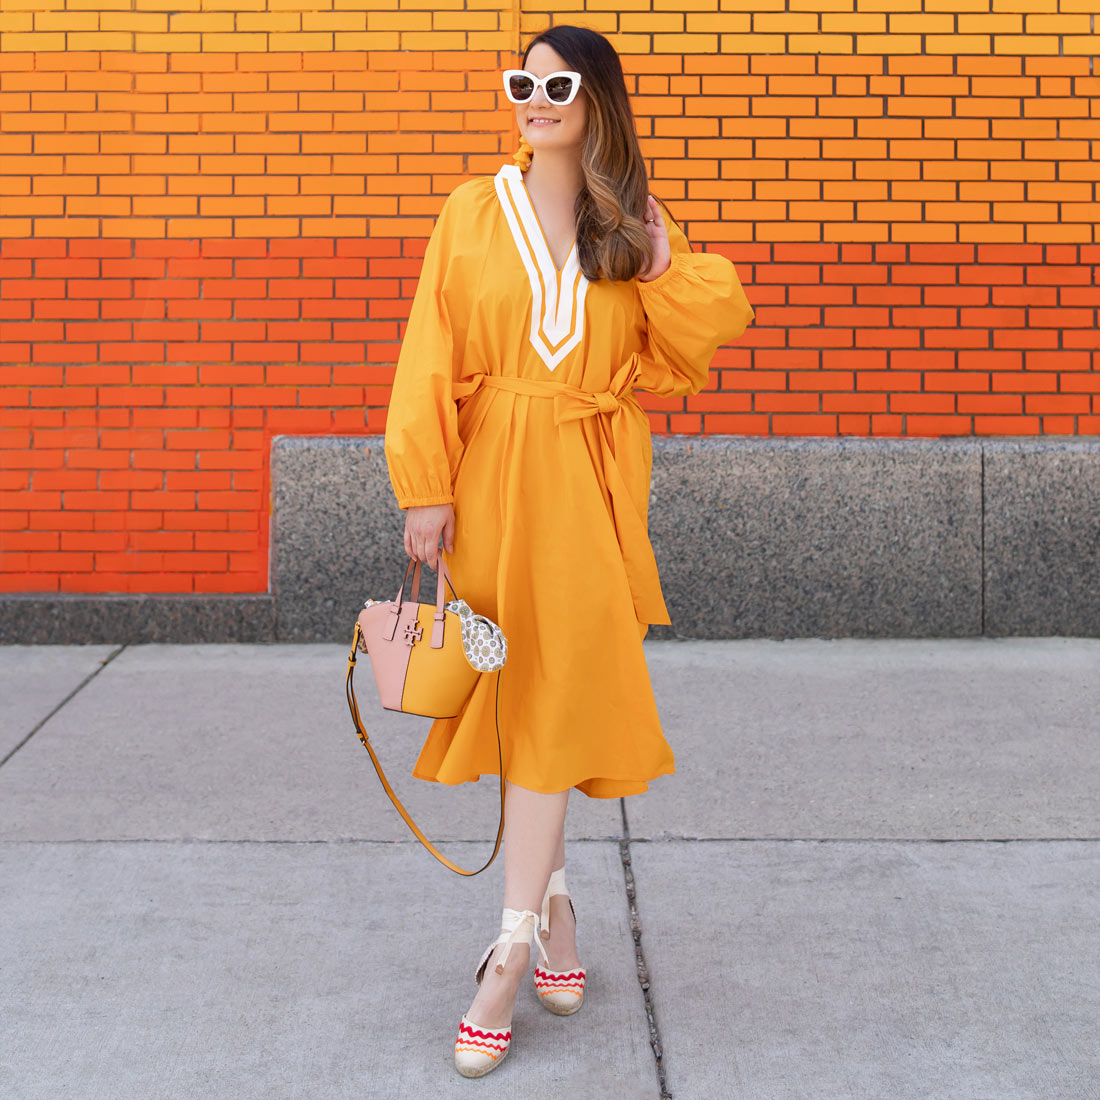 Tory Burch Yellow Tunic